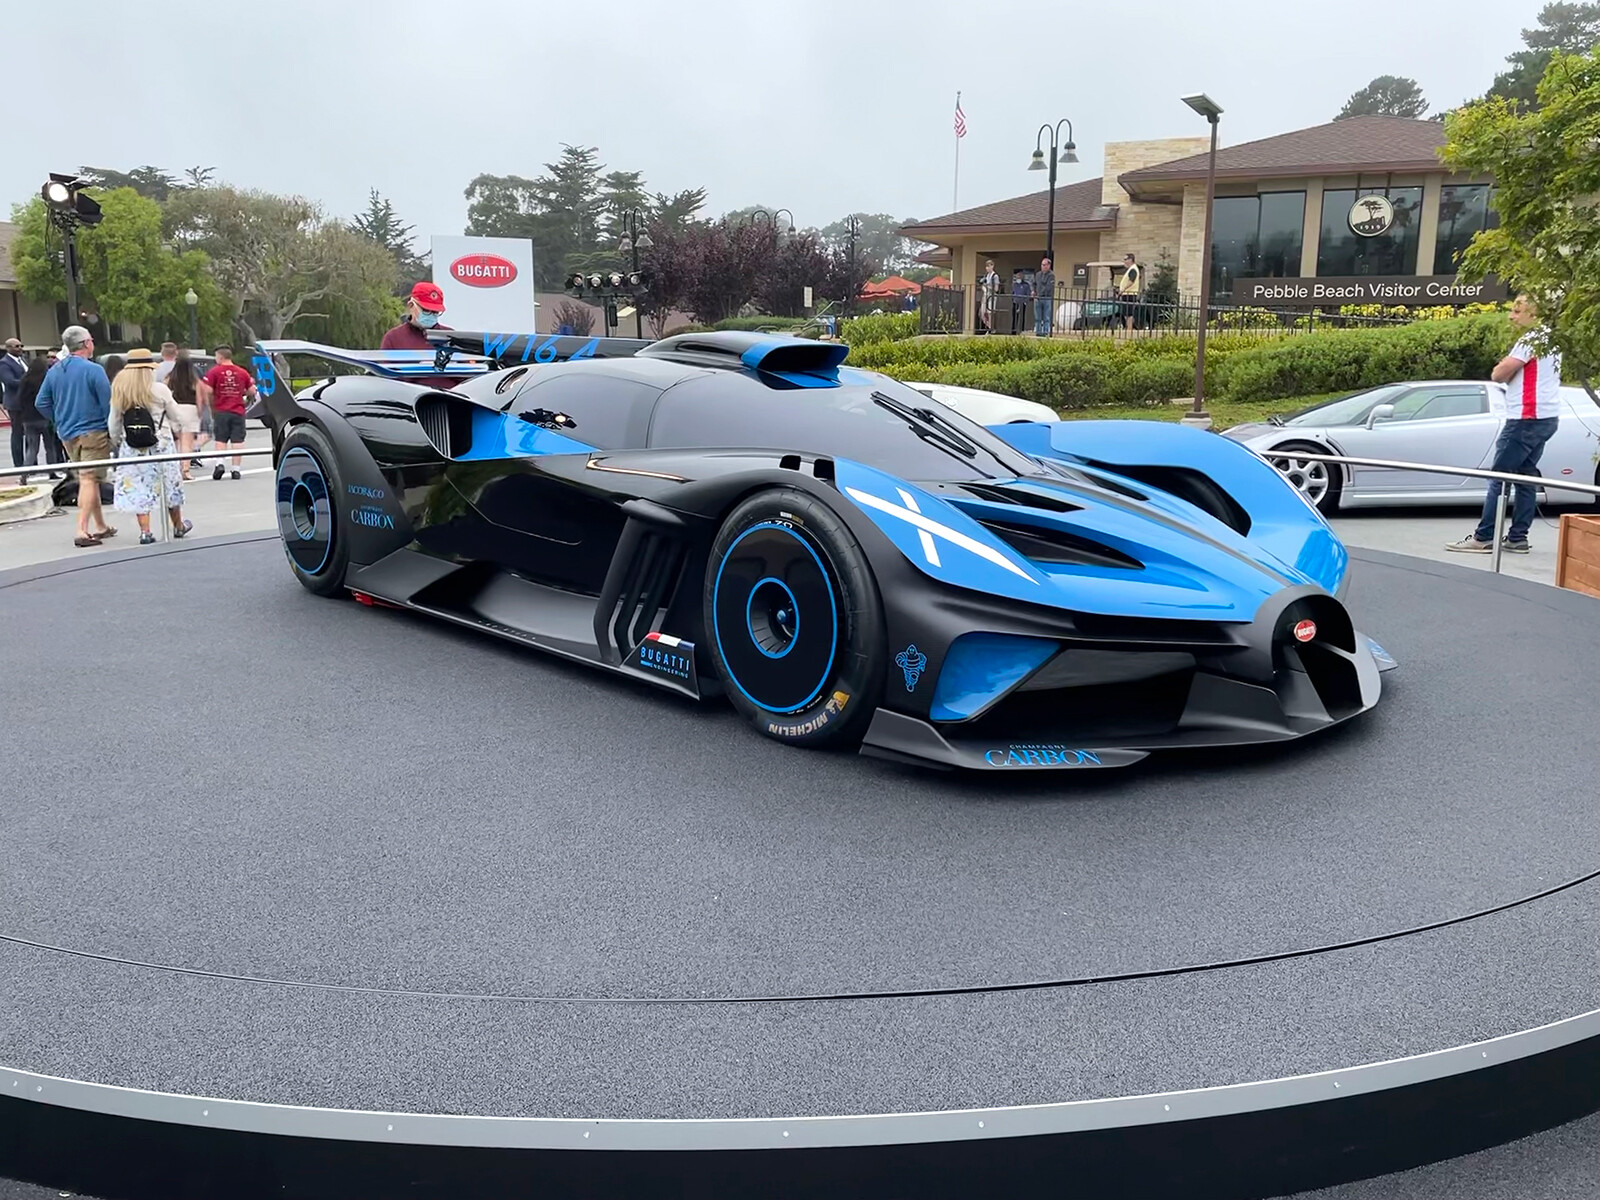 This $4.7 million racer will likely be Bugatti's last gas-powered supercar